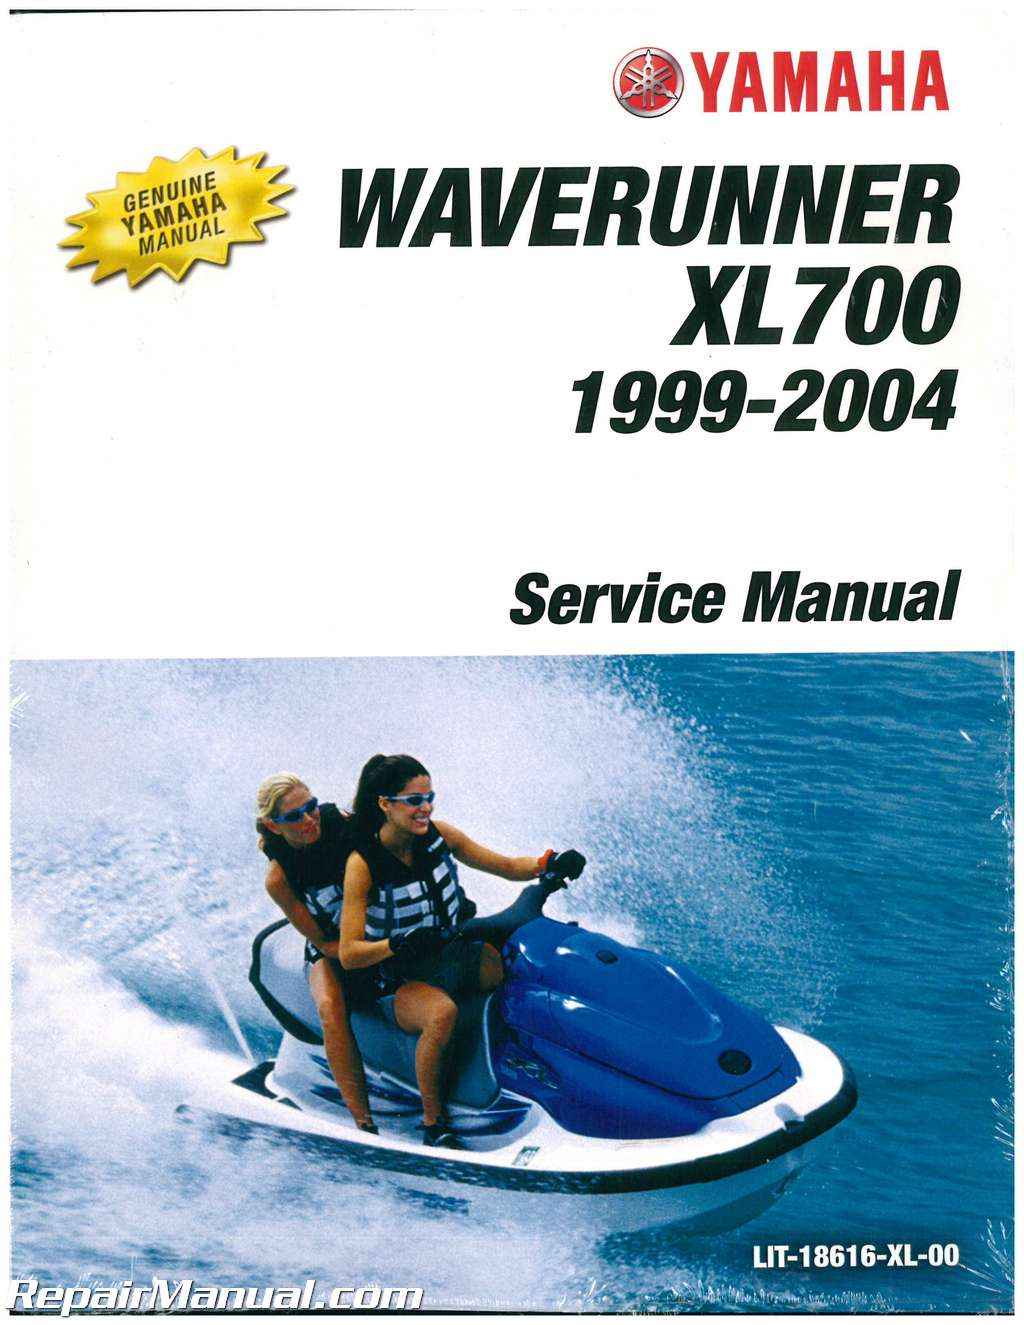 1999 2004 yamaha xl700 xl760 waverunner service manual rh repairmanual com yamaha gp800r repair manual yamaha gp800 service manual free